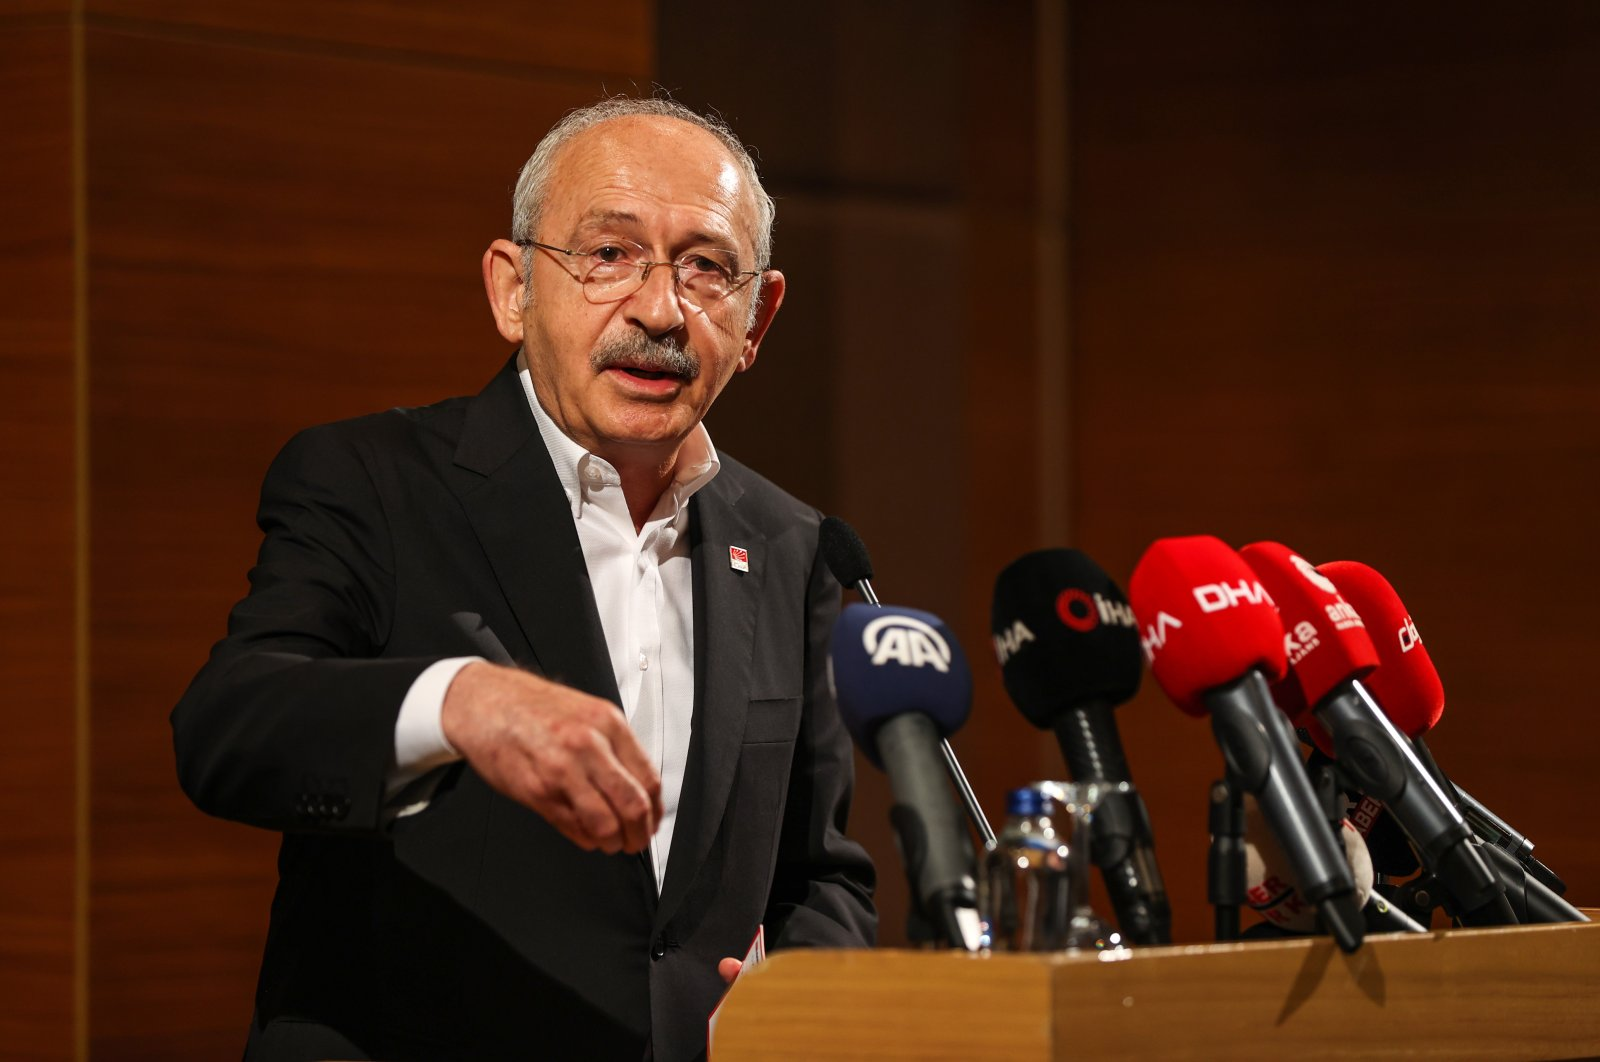 Kemal Kılıçdaroğlu, the main opposition Republican People's Party (CHP) chairperson speaking at a meeting in Istanbul, Turkey, July 31, 2021 (AA Photo)